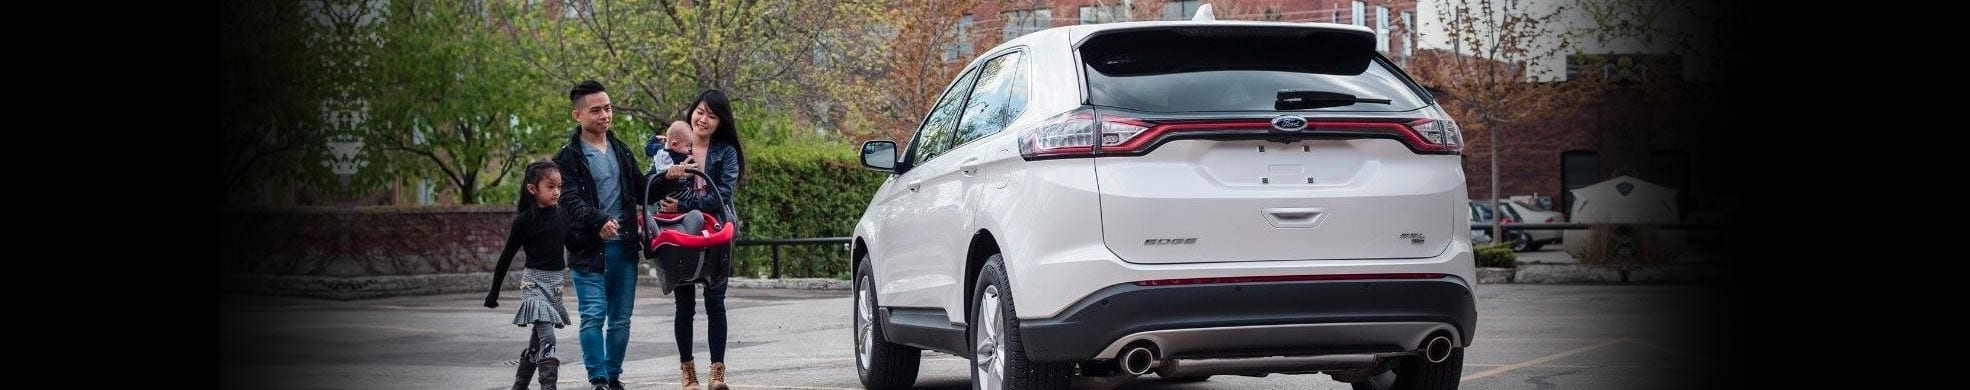 White Ford SUV Edge with family